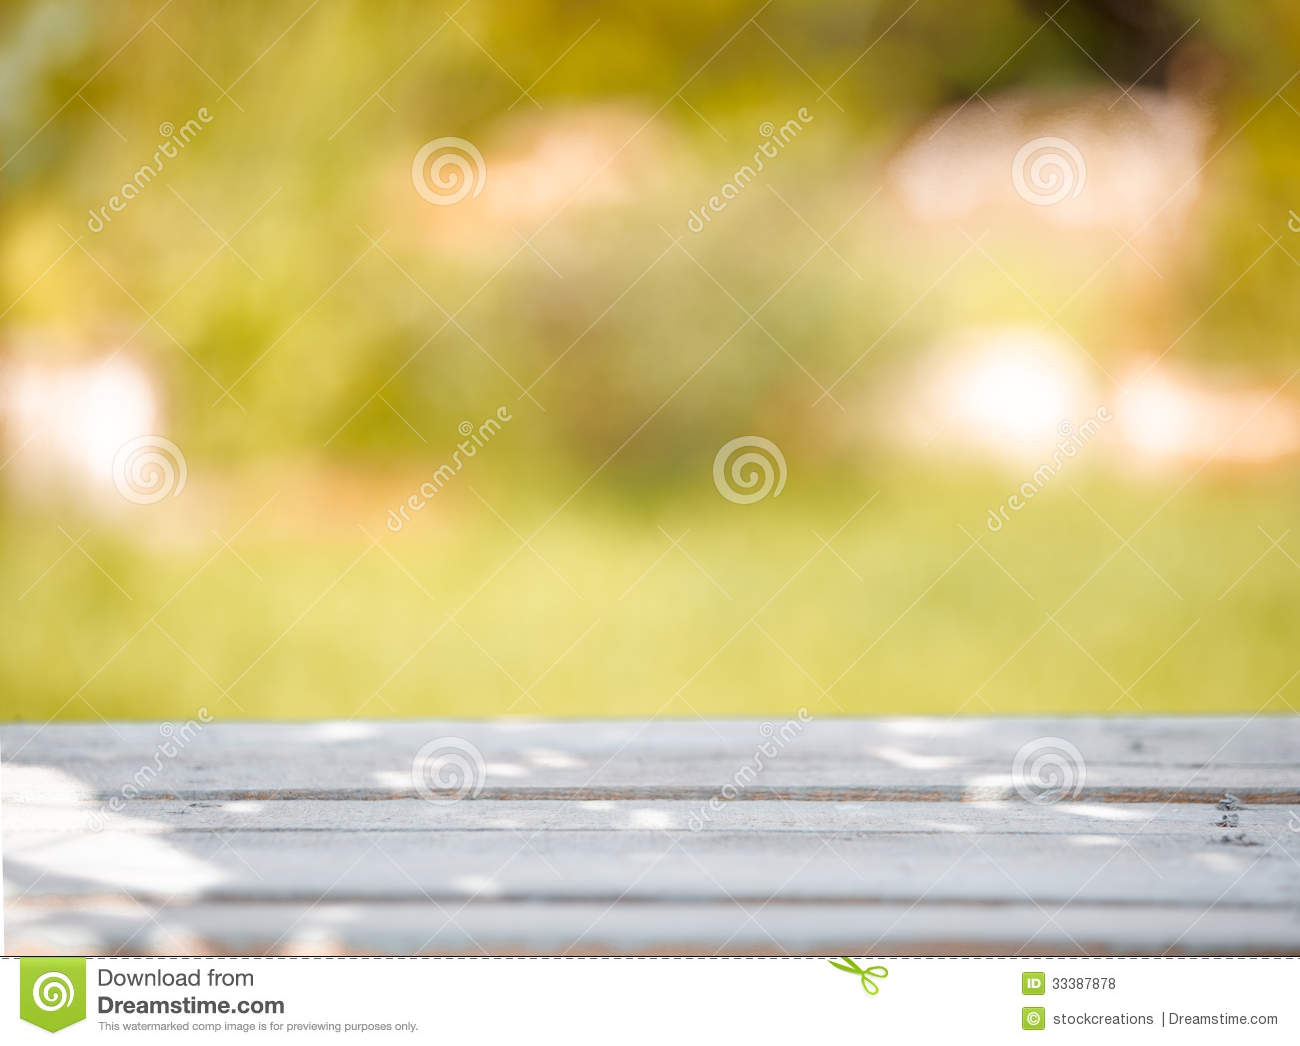 Wooden Table On A Green Blurred Background Royalty Free Stock Photos ...